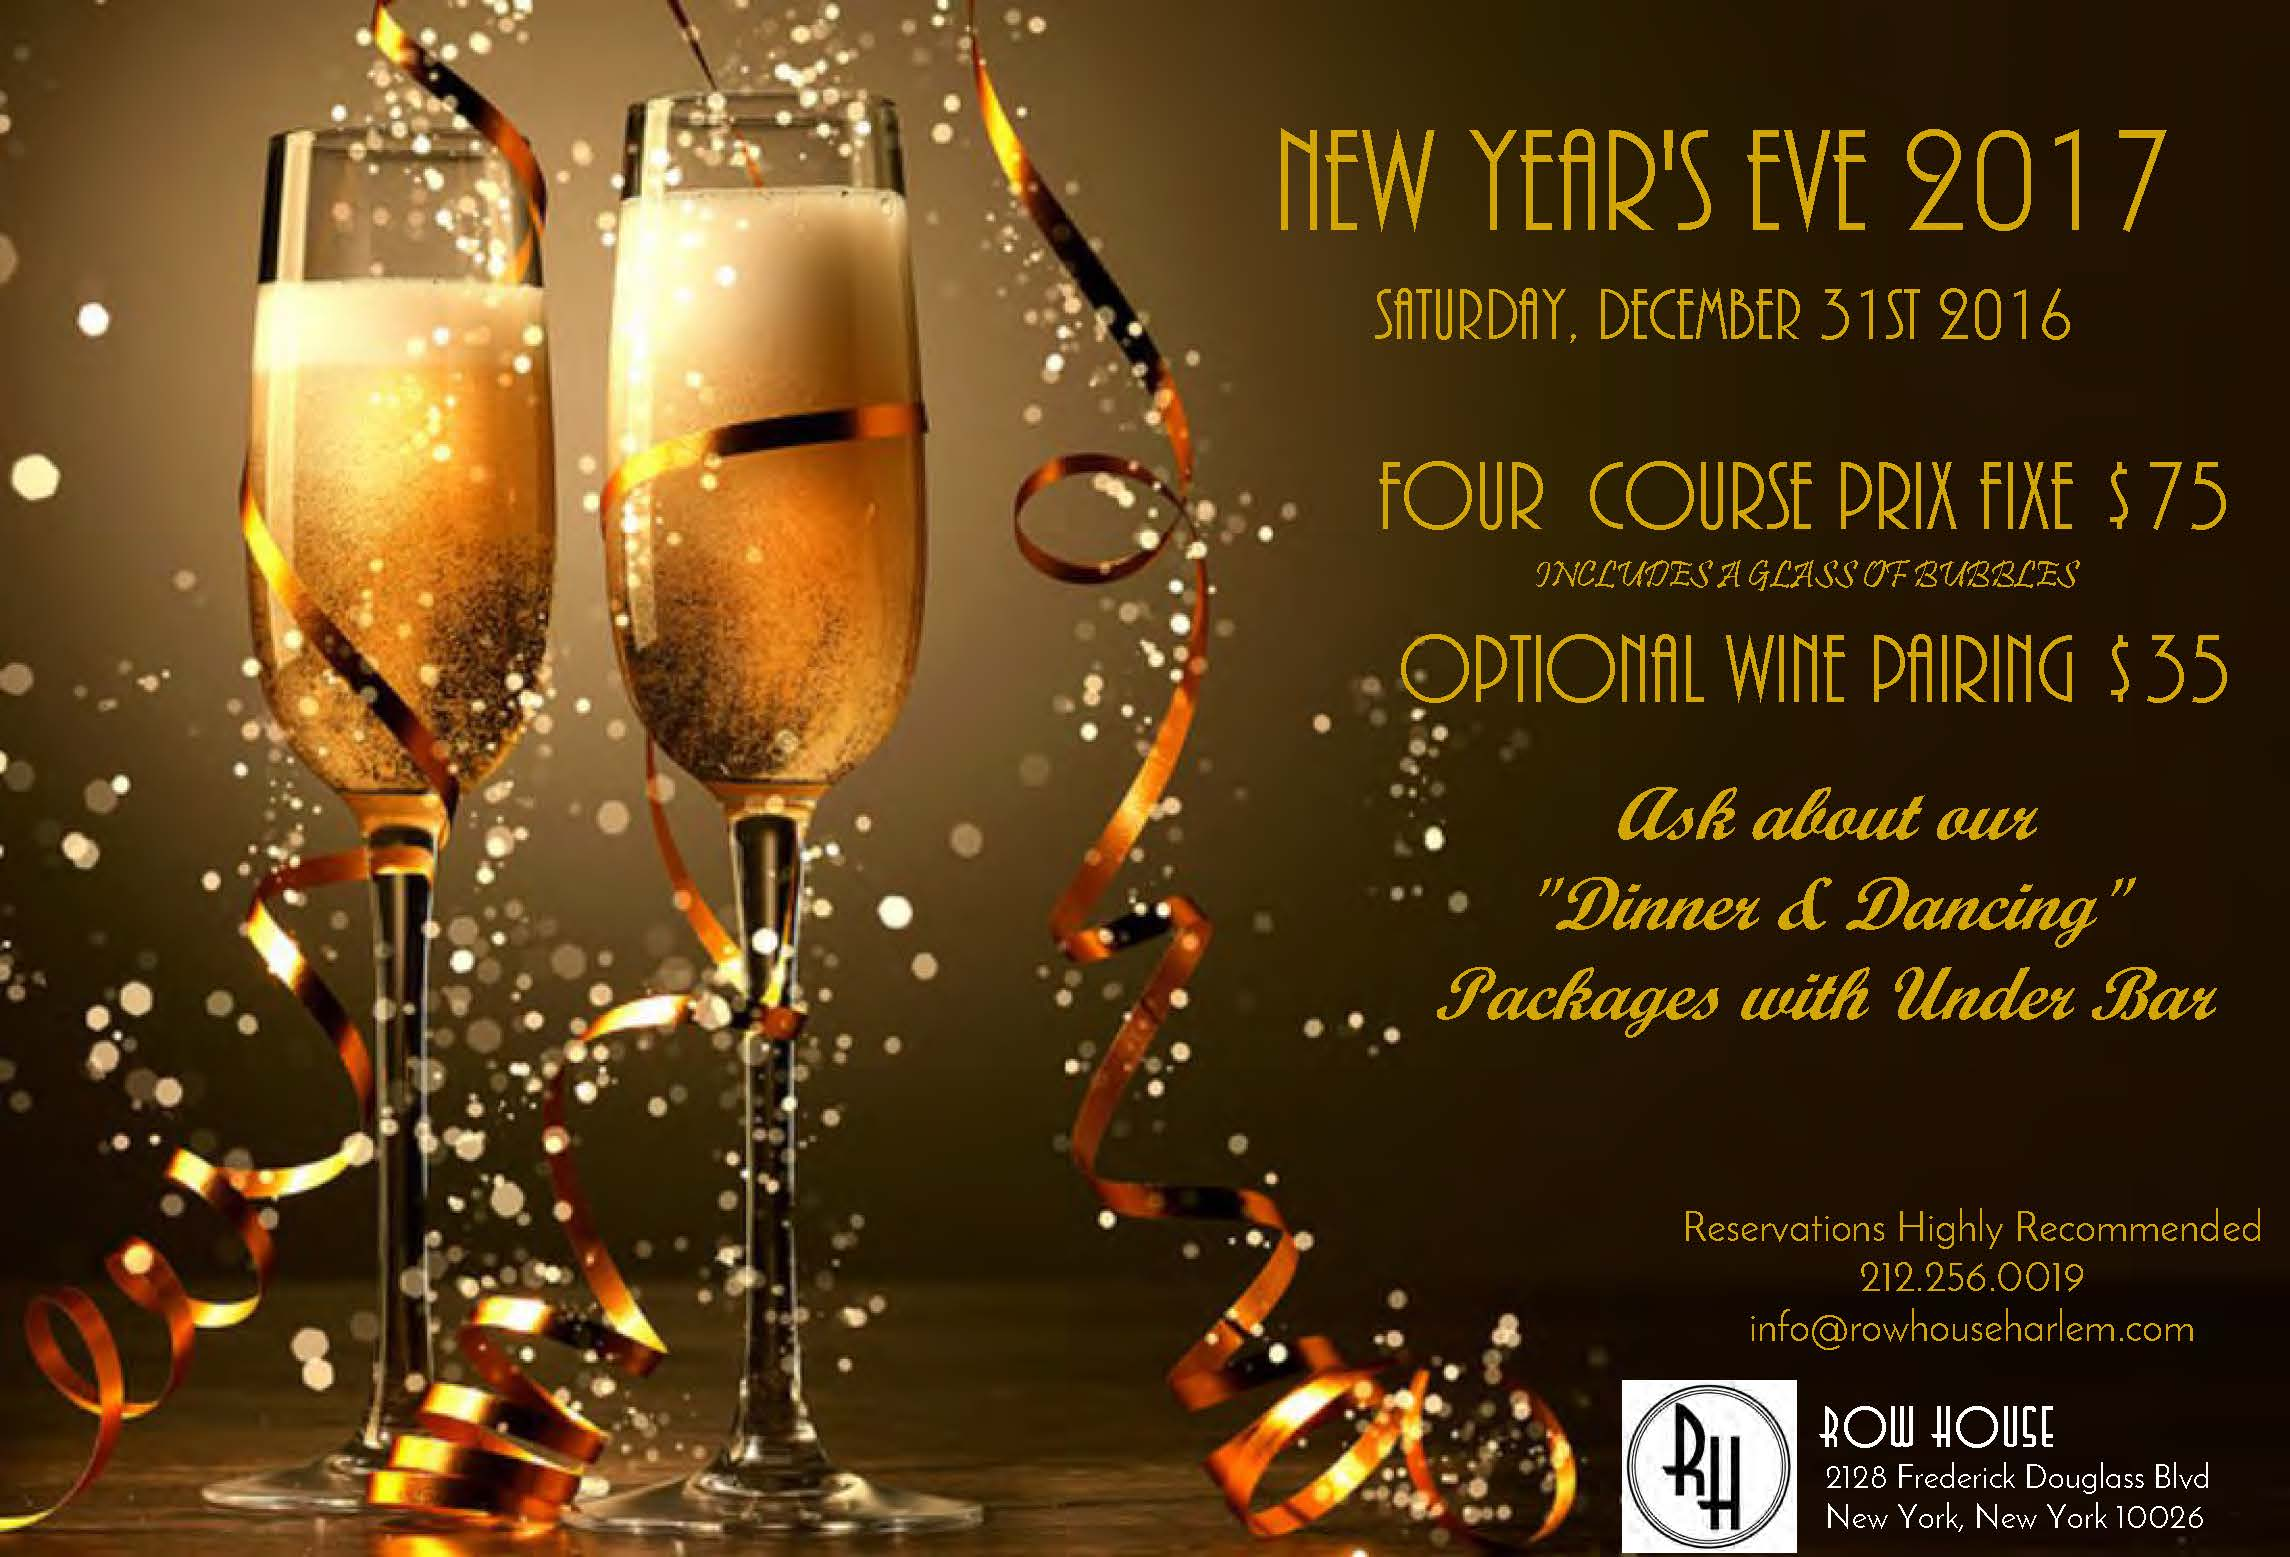 New Year's Eve at Row House